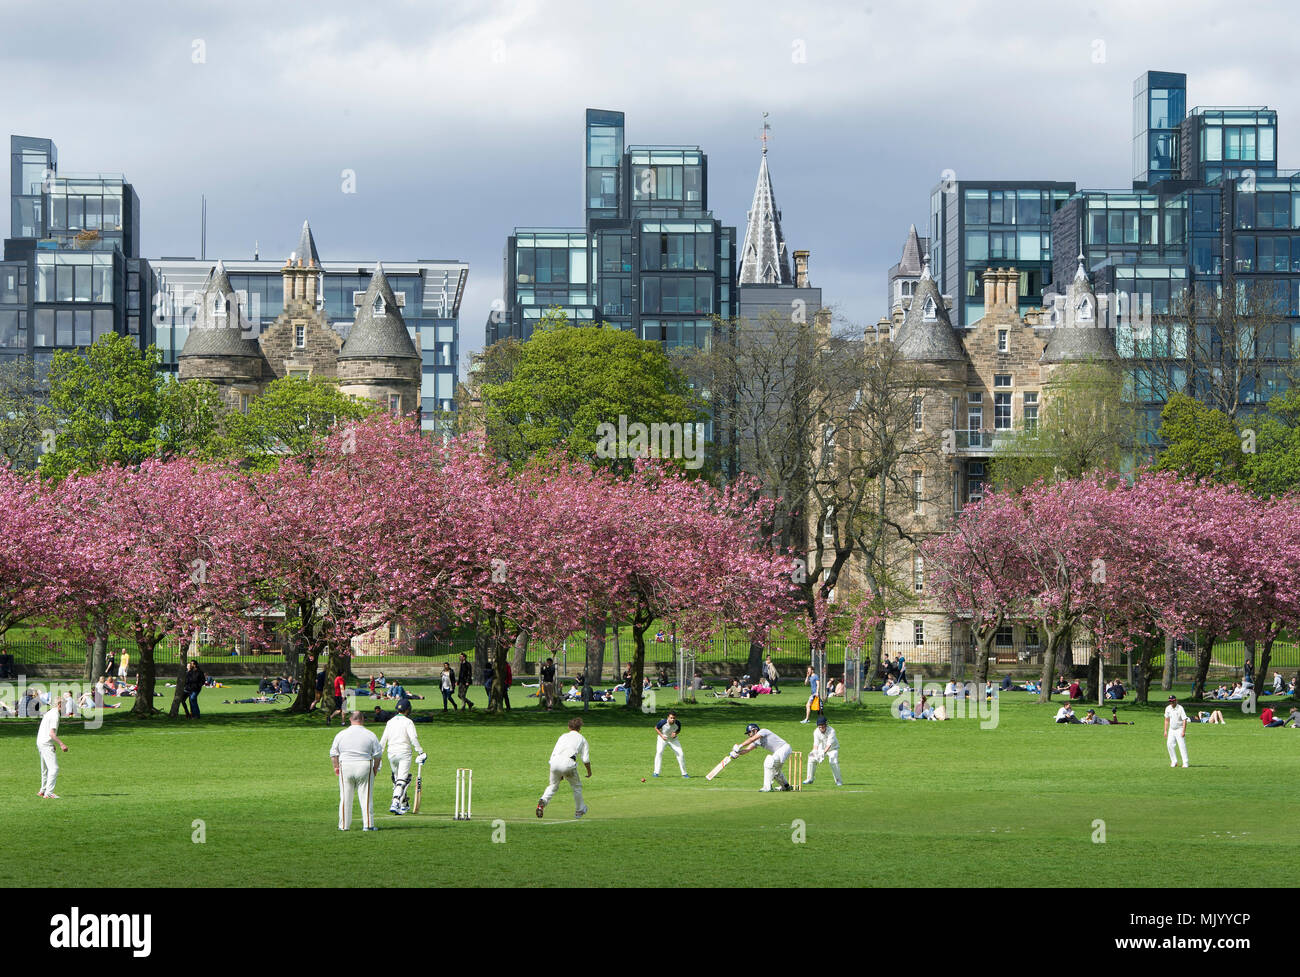 A cricket match taking place in the Meadows, Edinburgh with the apartments in the Quartermile in the distance. - Stock Image